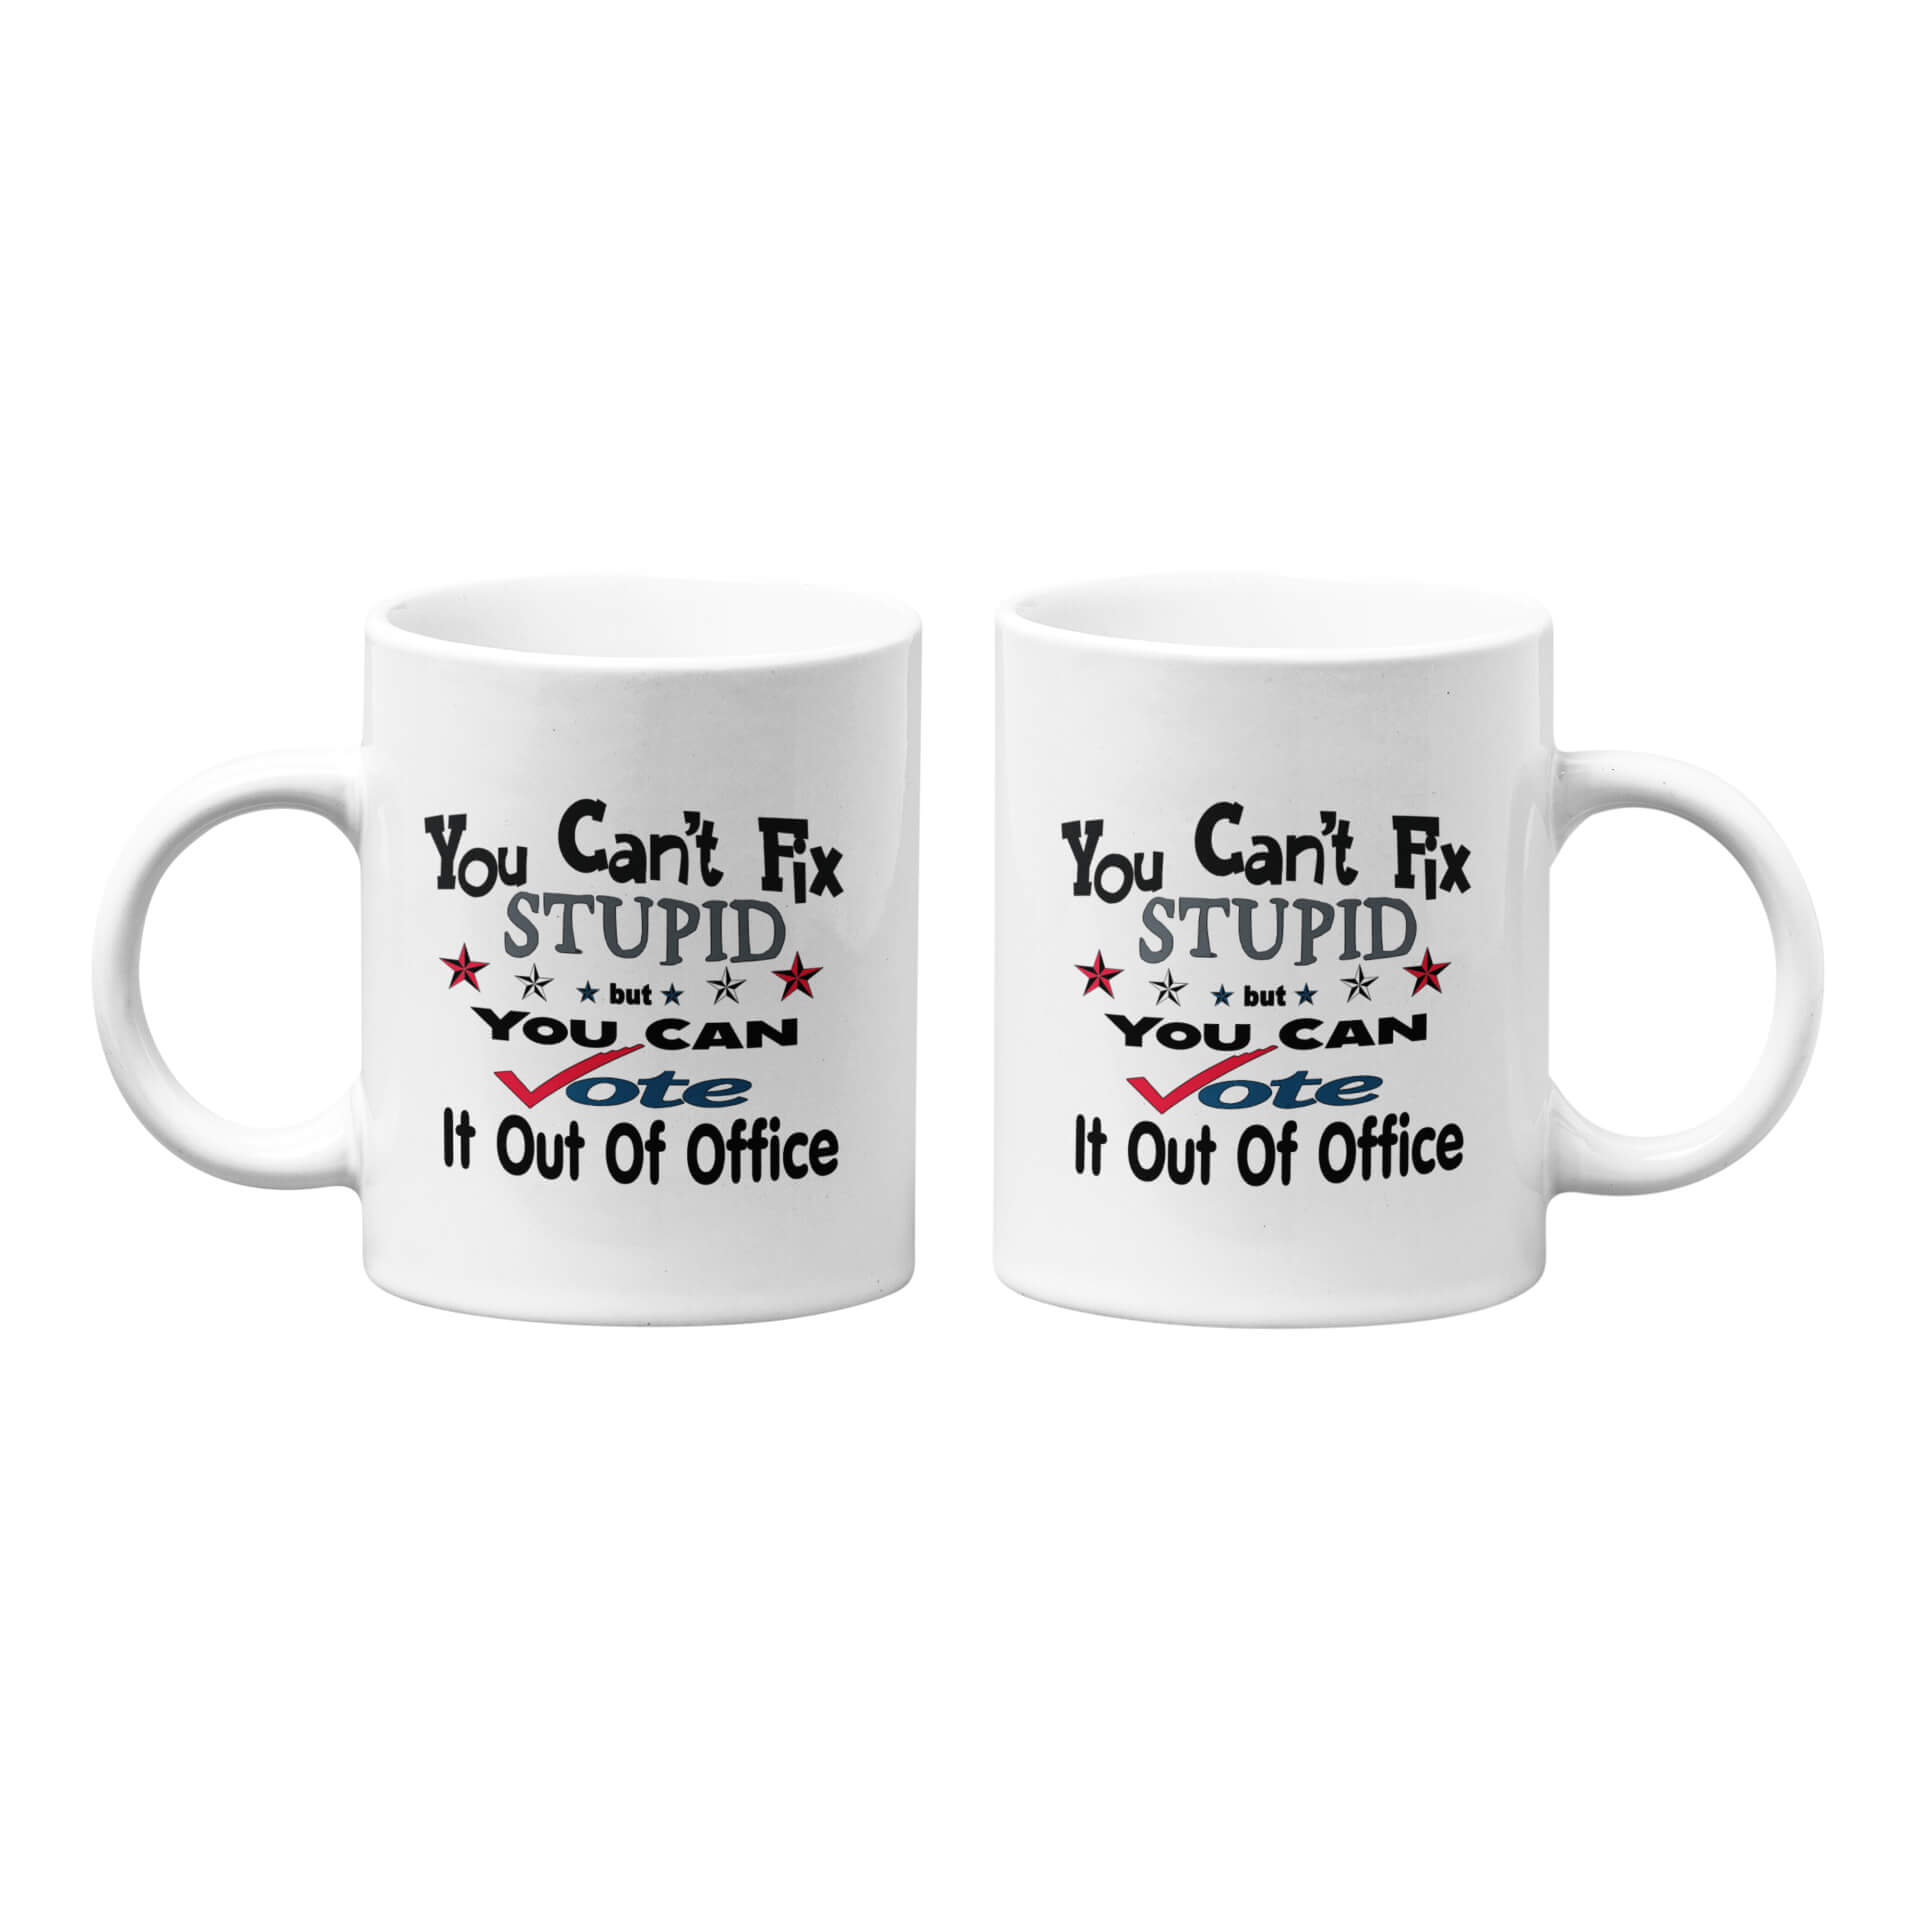 You Can't Fix Stupid but You Can Vote It Out Of Office Mug